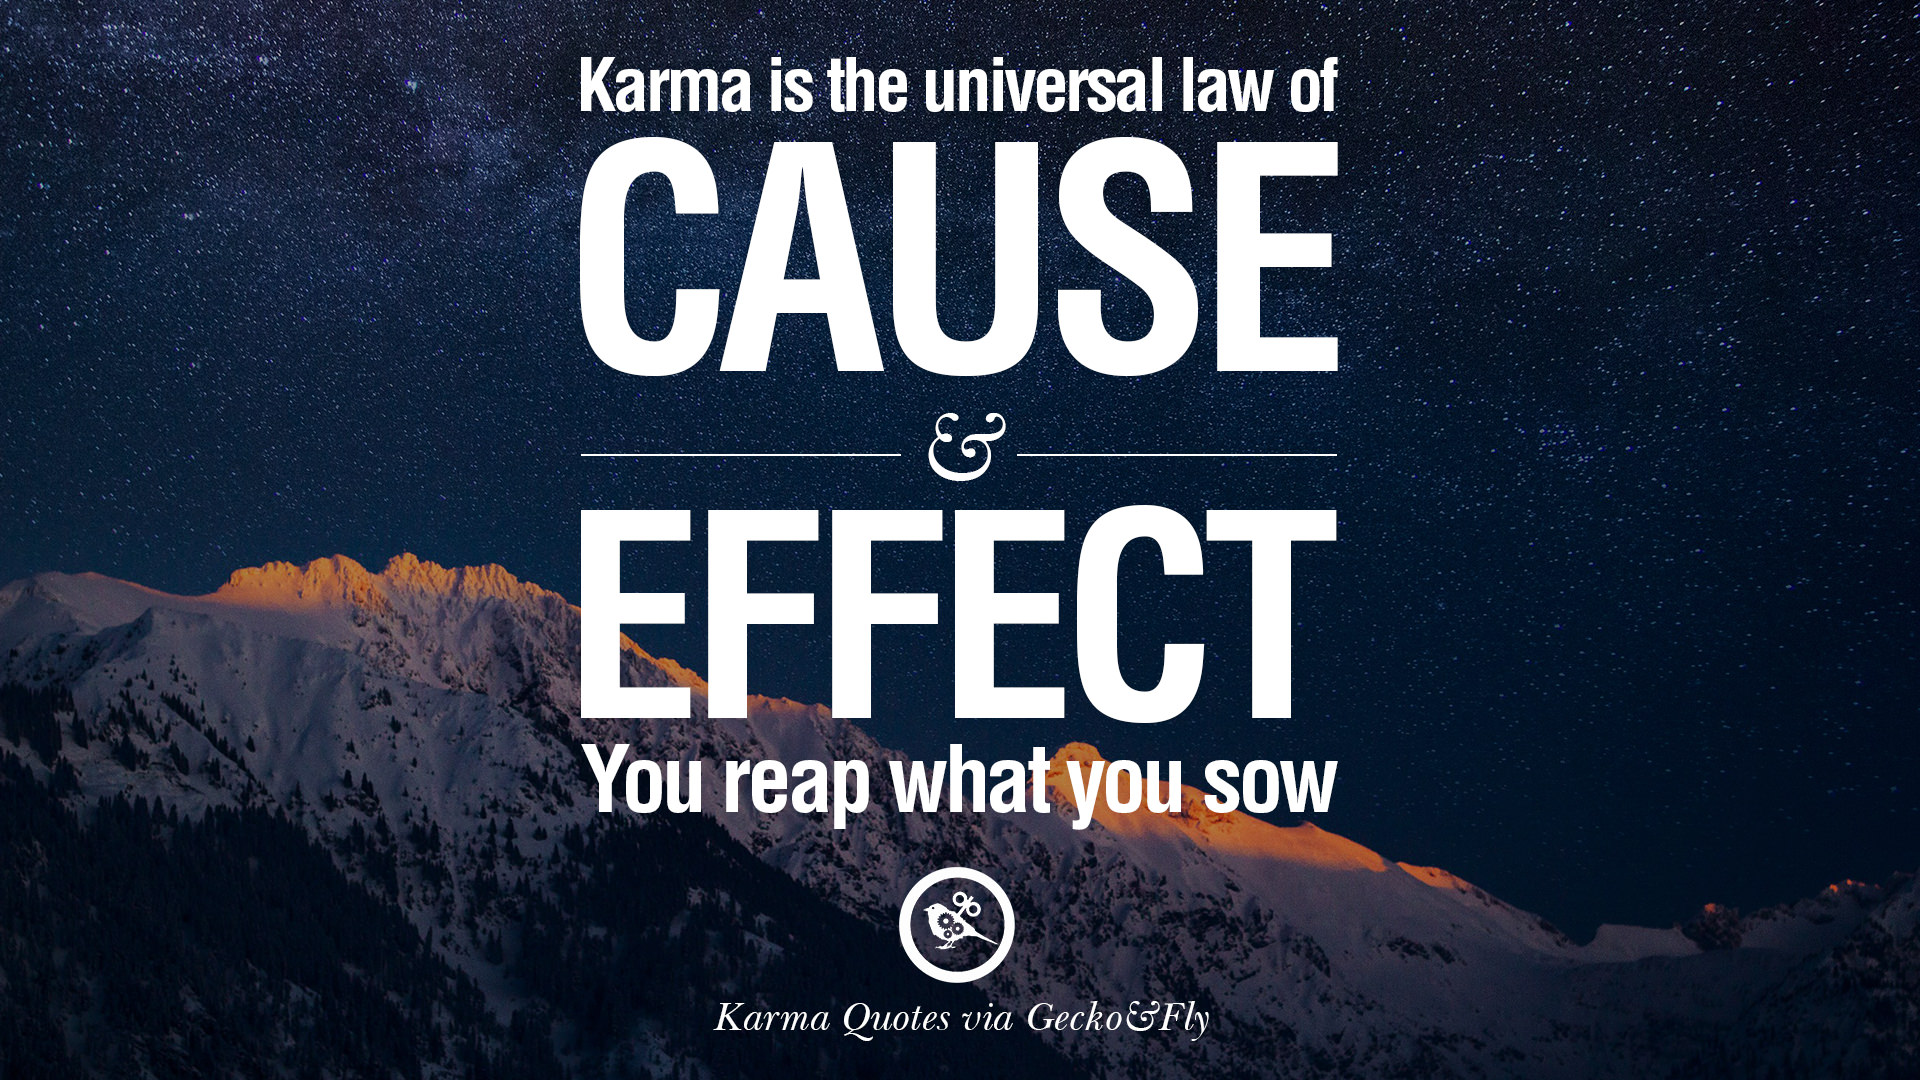 karma quote 9